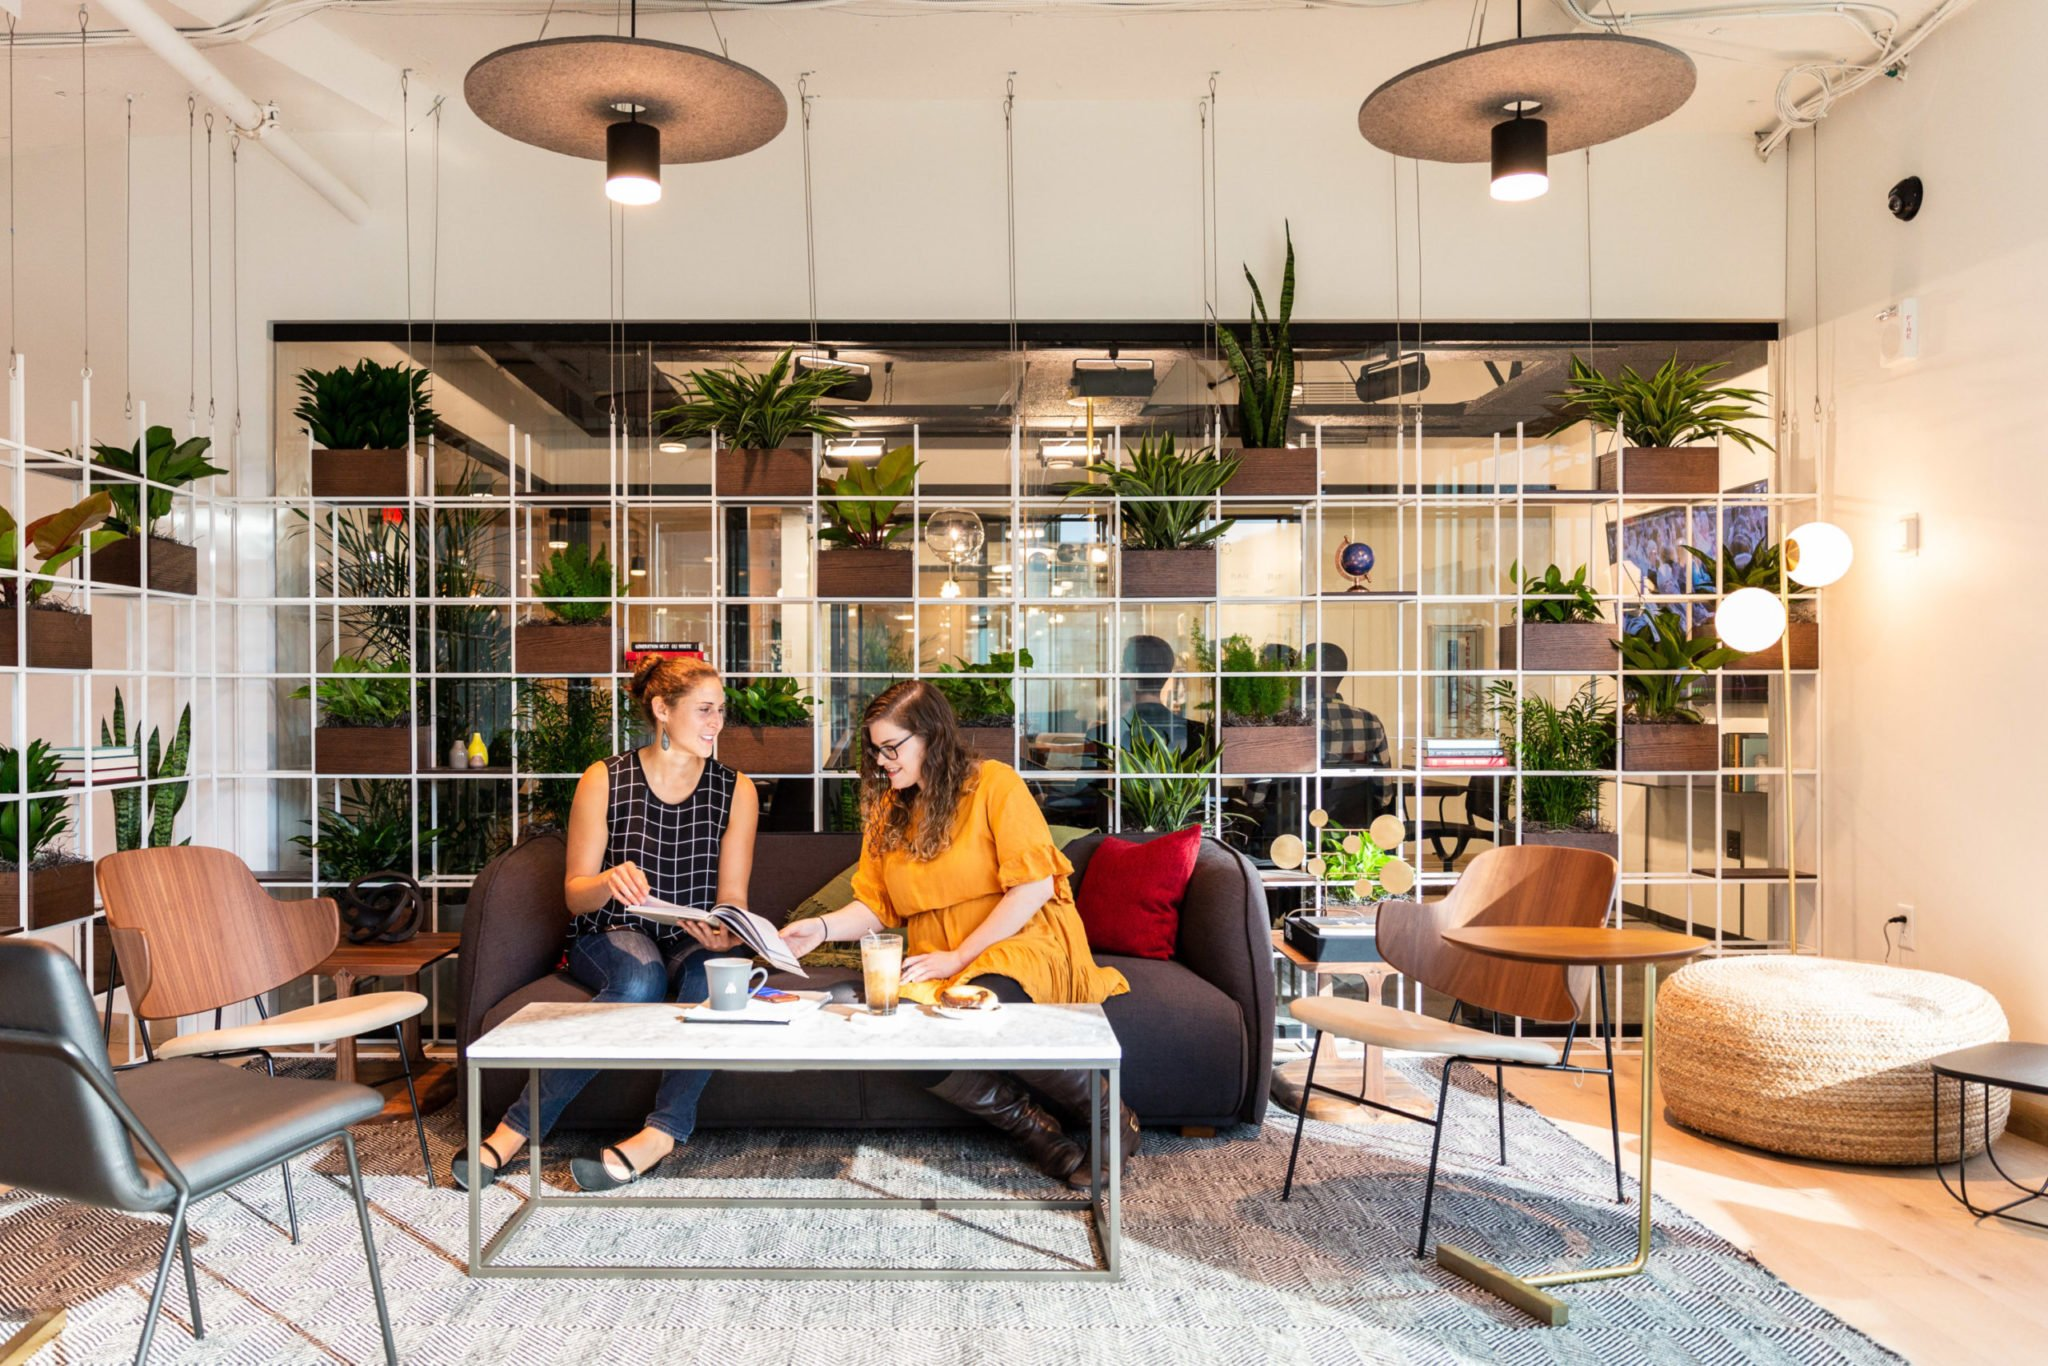 Concentrate on the important aspects of co-working space